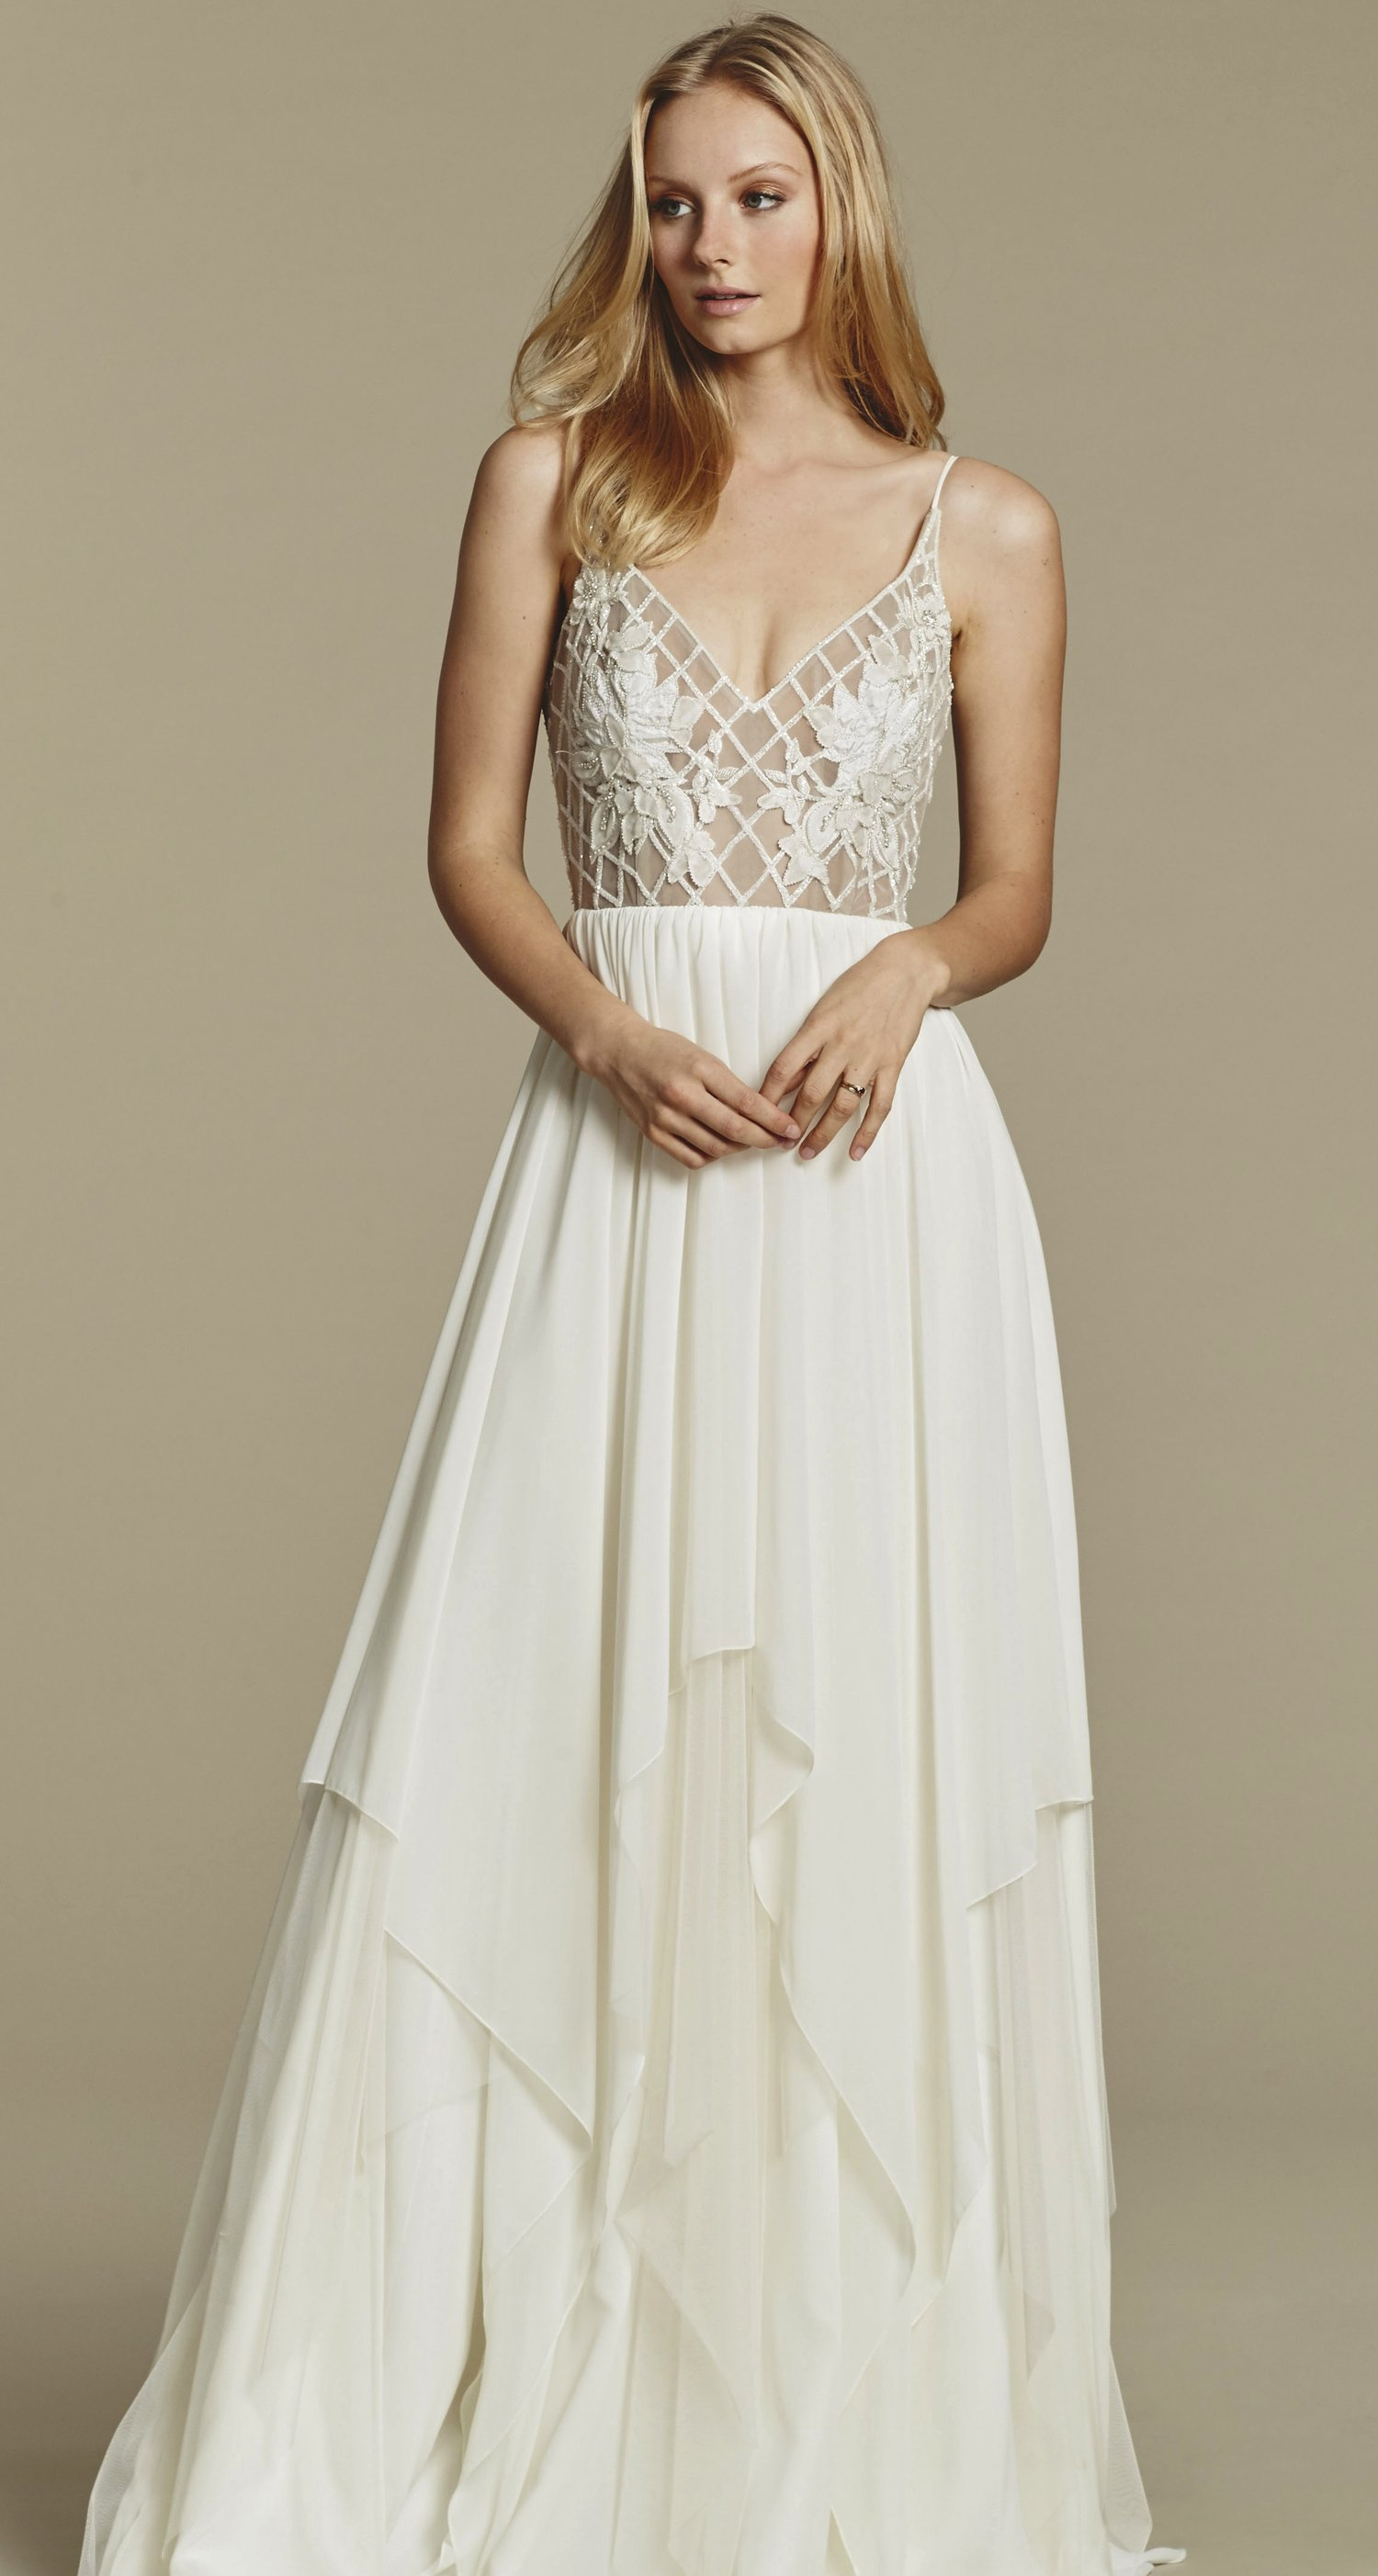 Our Favorite Bridal Dresses For Your Beach Wedding | JLM Couture